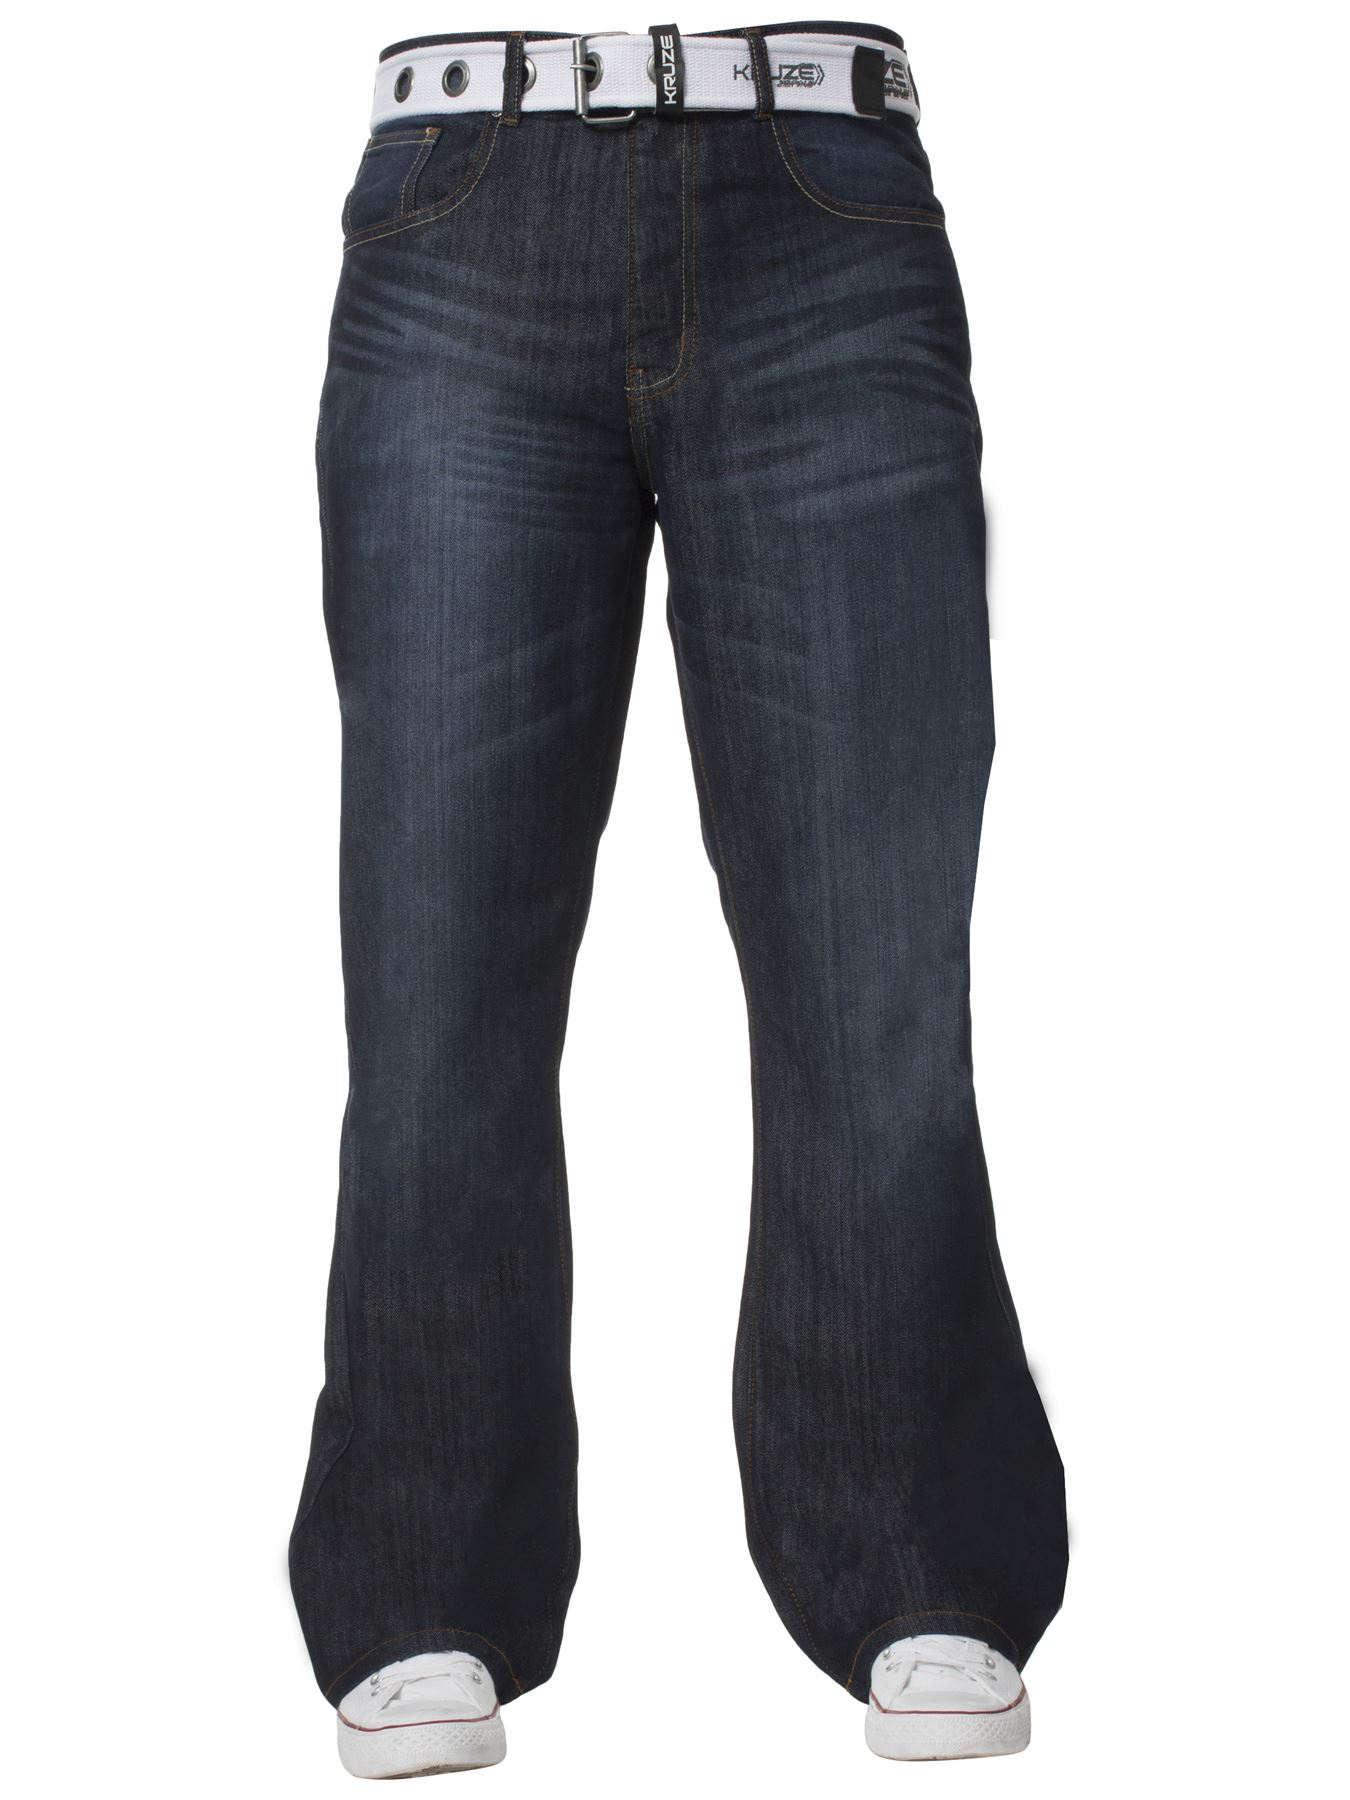 Kruze-Mens-Bootcut-Jeans-Flared-Wide-Leg-Denim-Pants-Big-Tall-King-All-Waists thumbnail 18